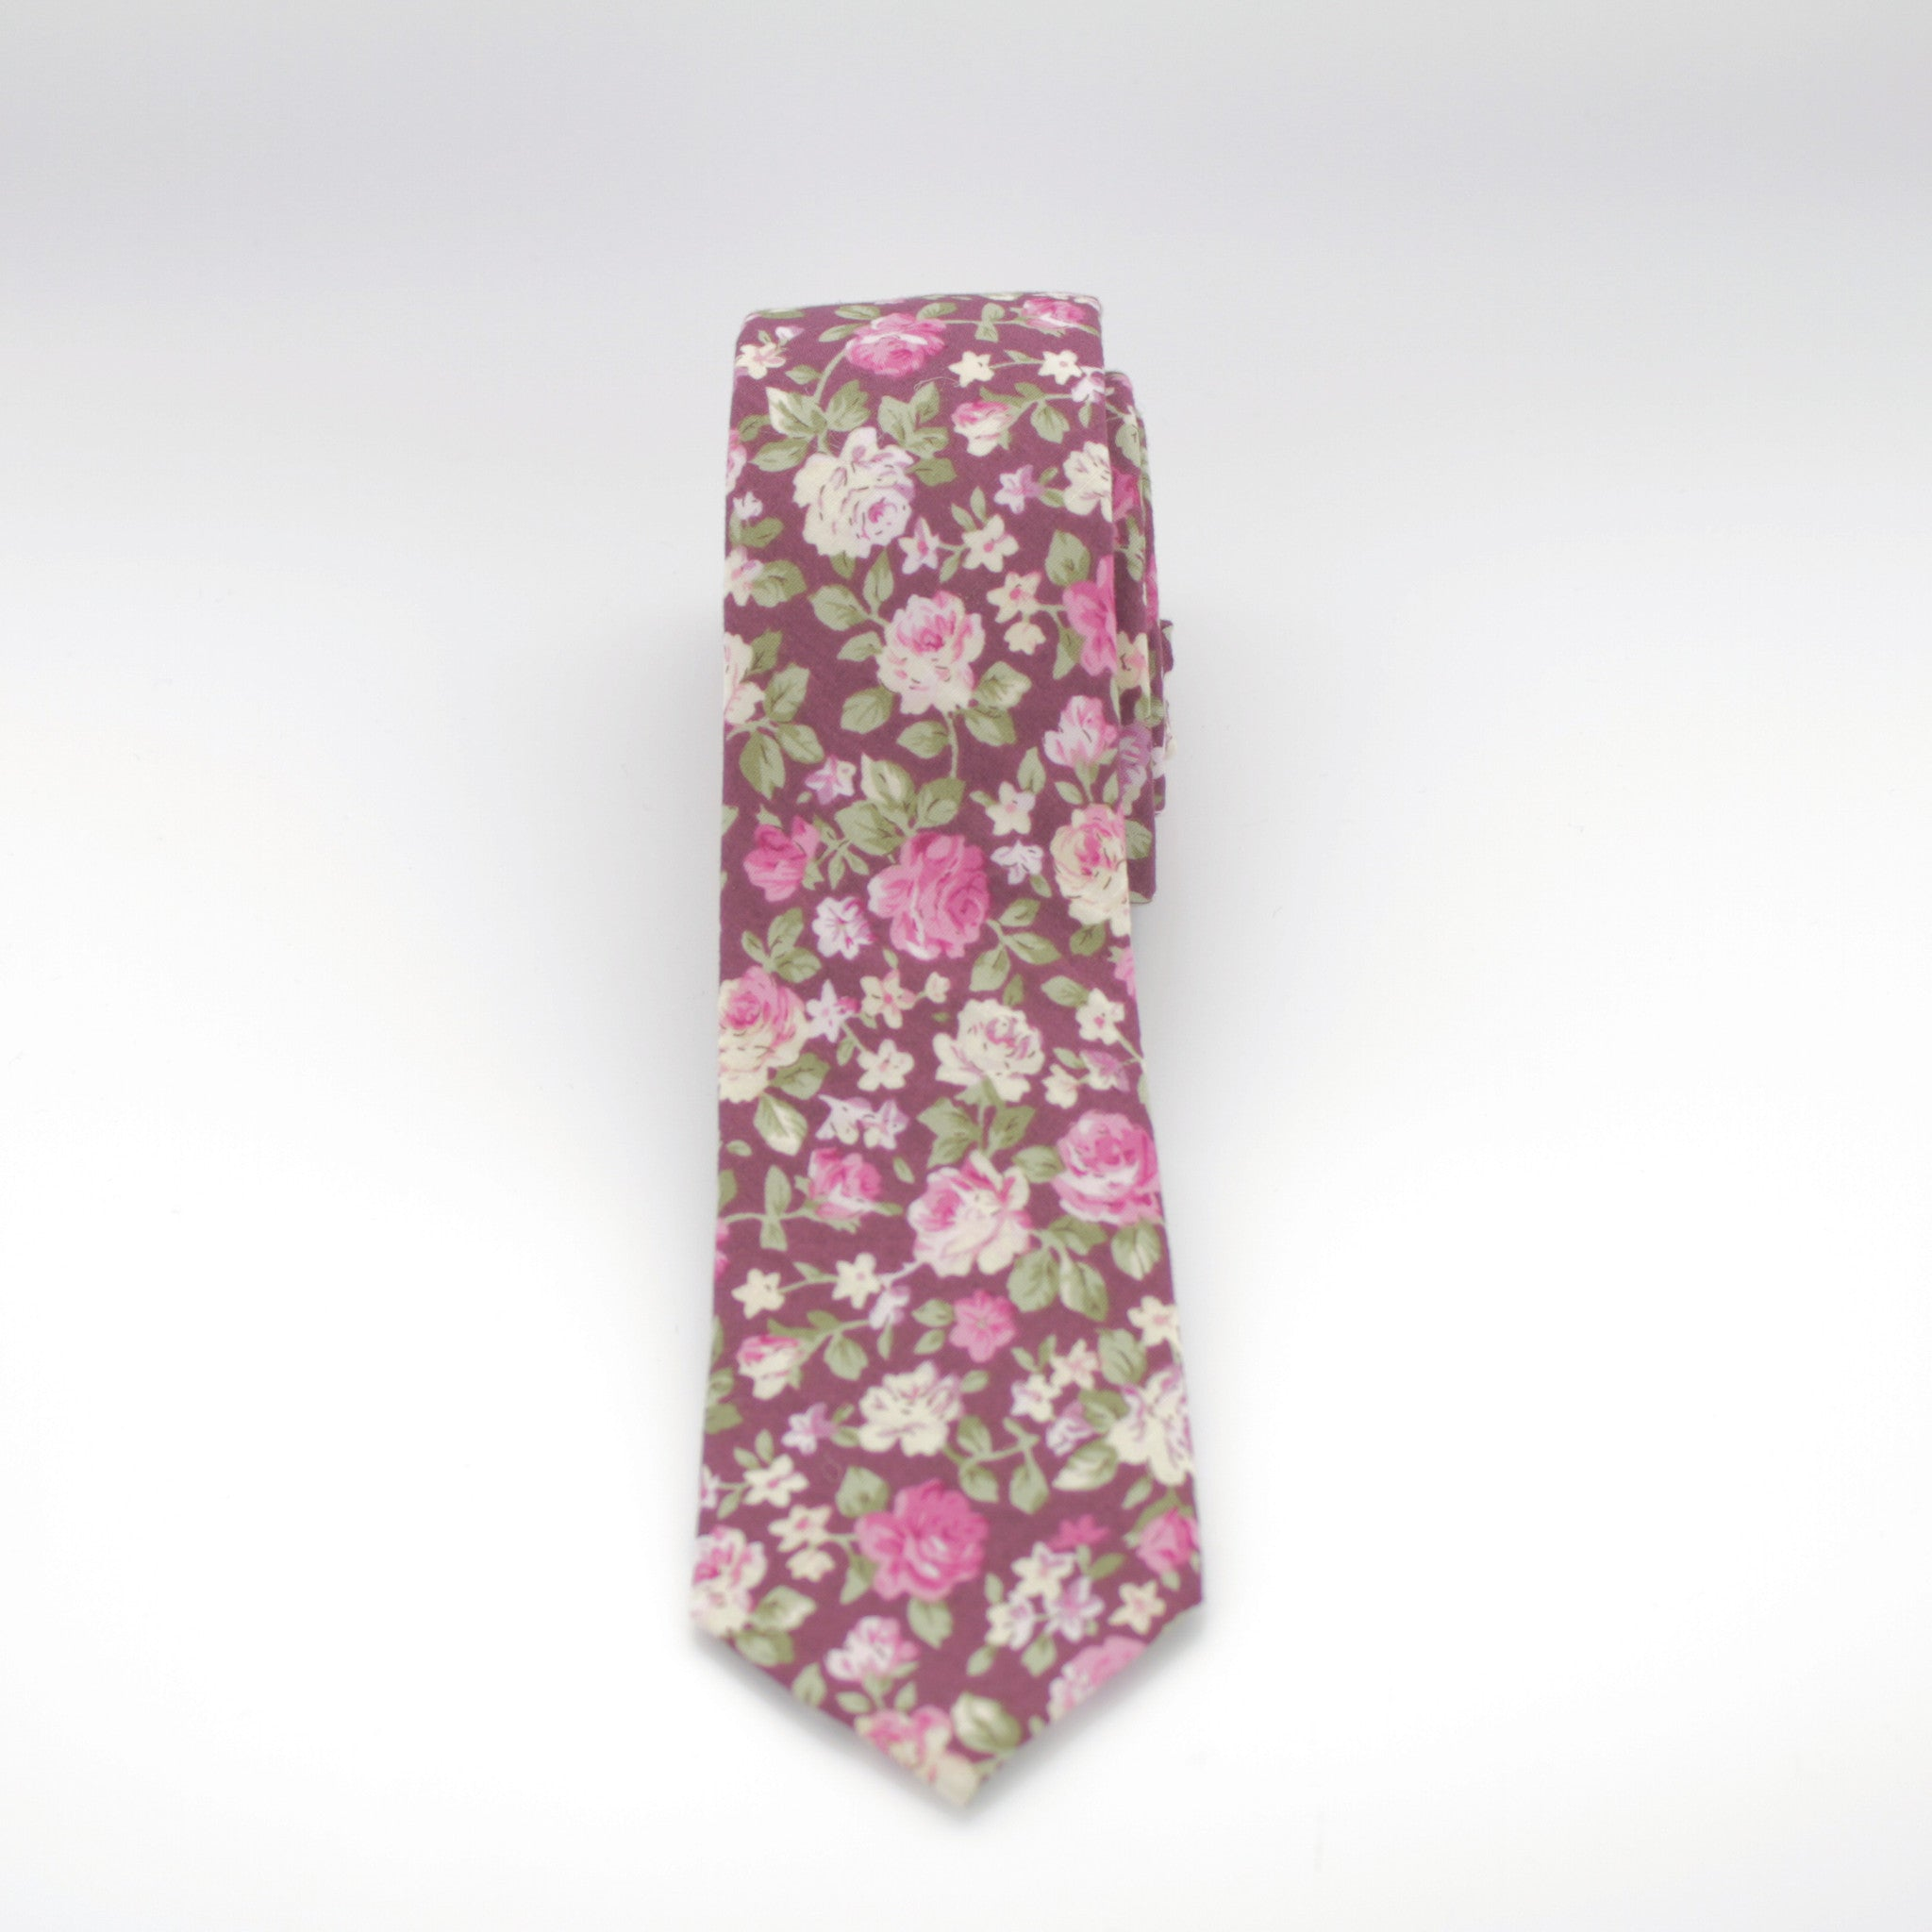 Burgundy and Pink Floral Tie